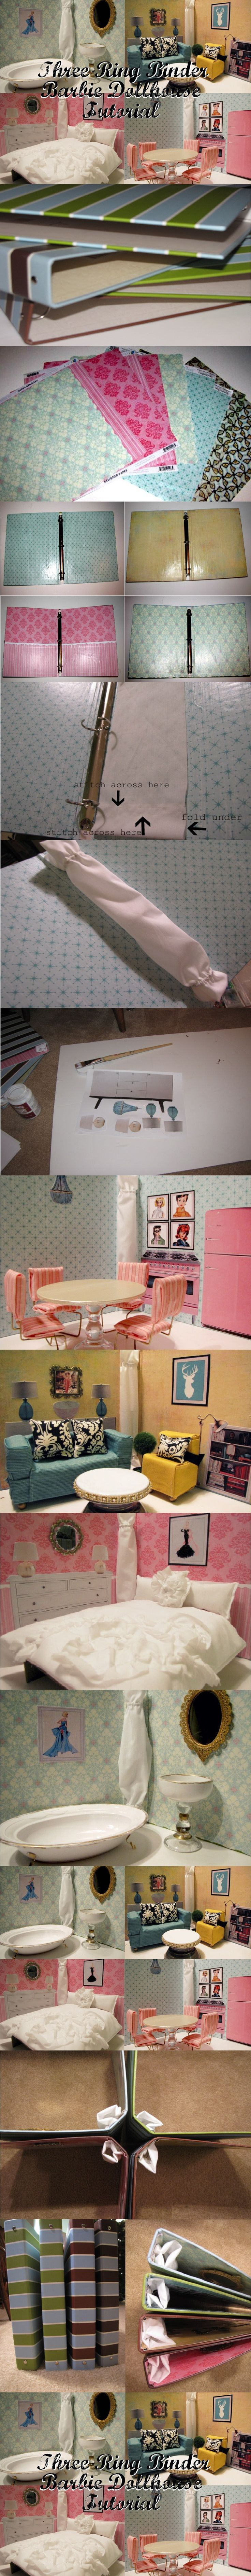 The 7 Reasons Why You Need Furniture For Your Barbie Dolls